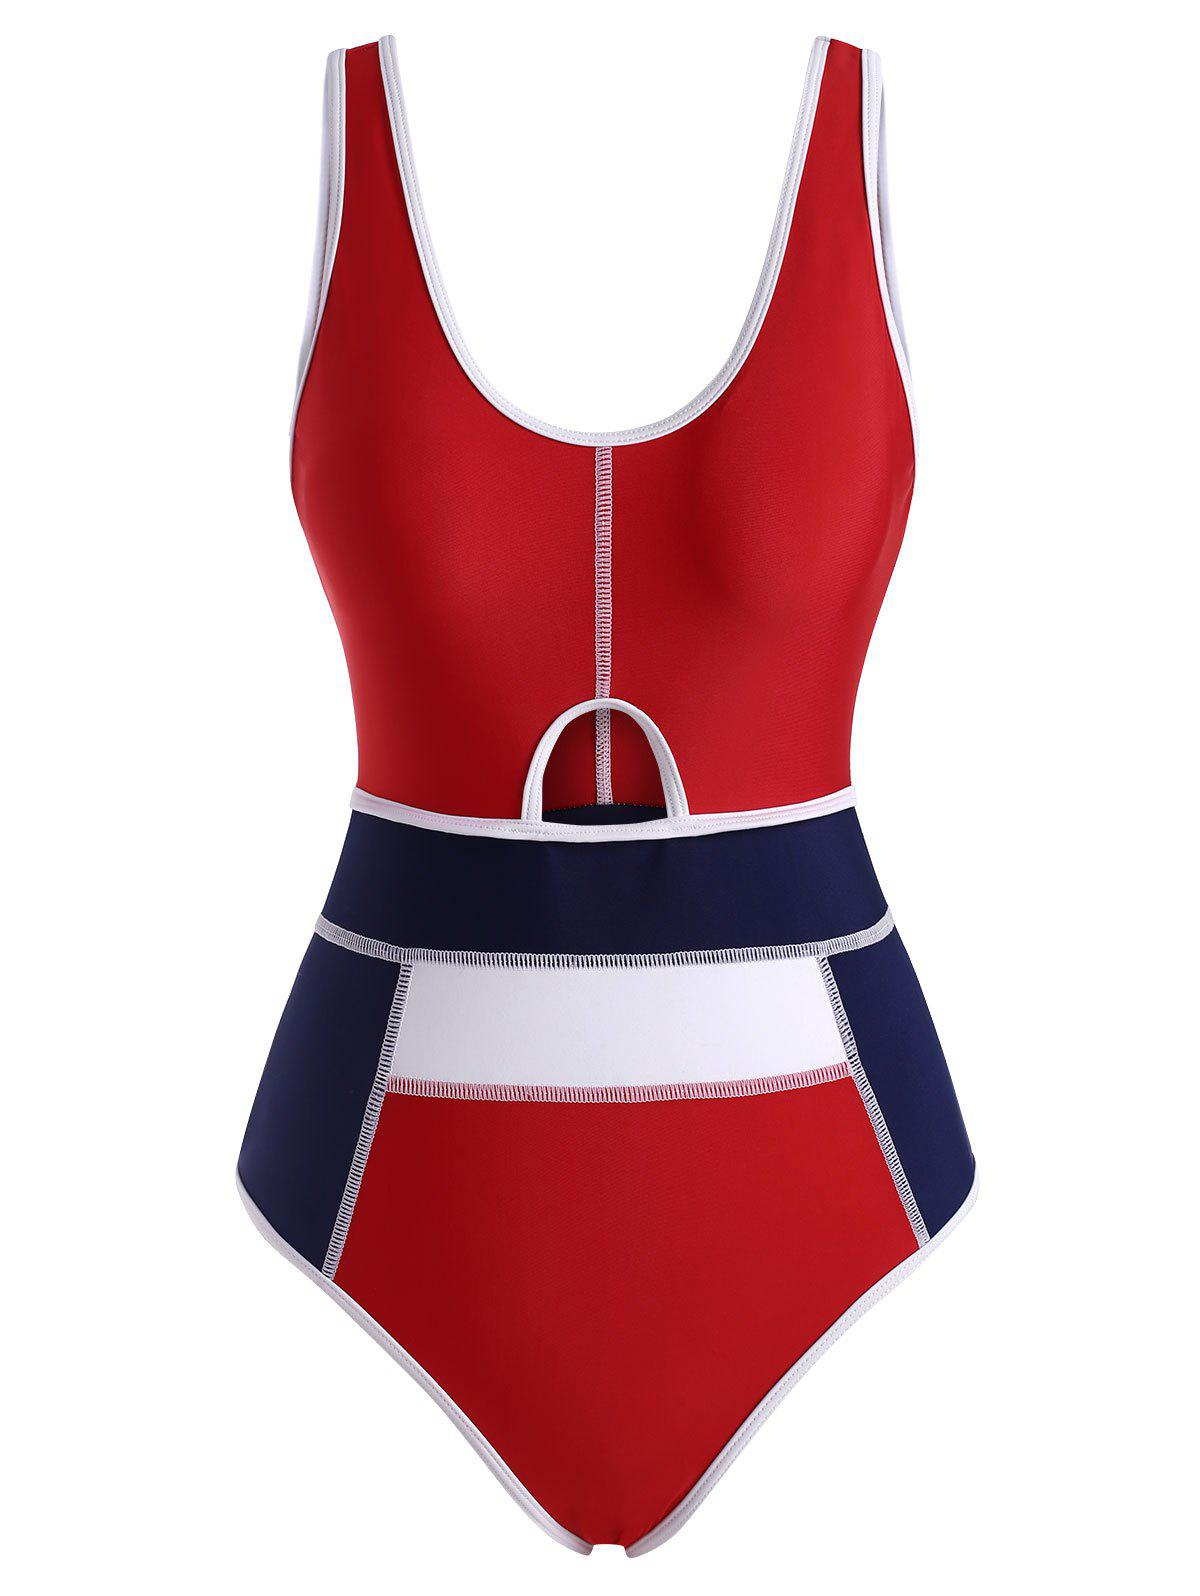 Binding Color Blocking High Cut Topstitch One-piece Swimsuit - multicolor XL